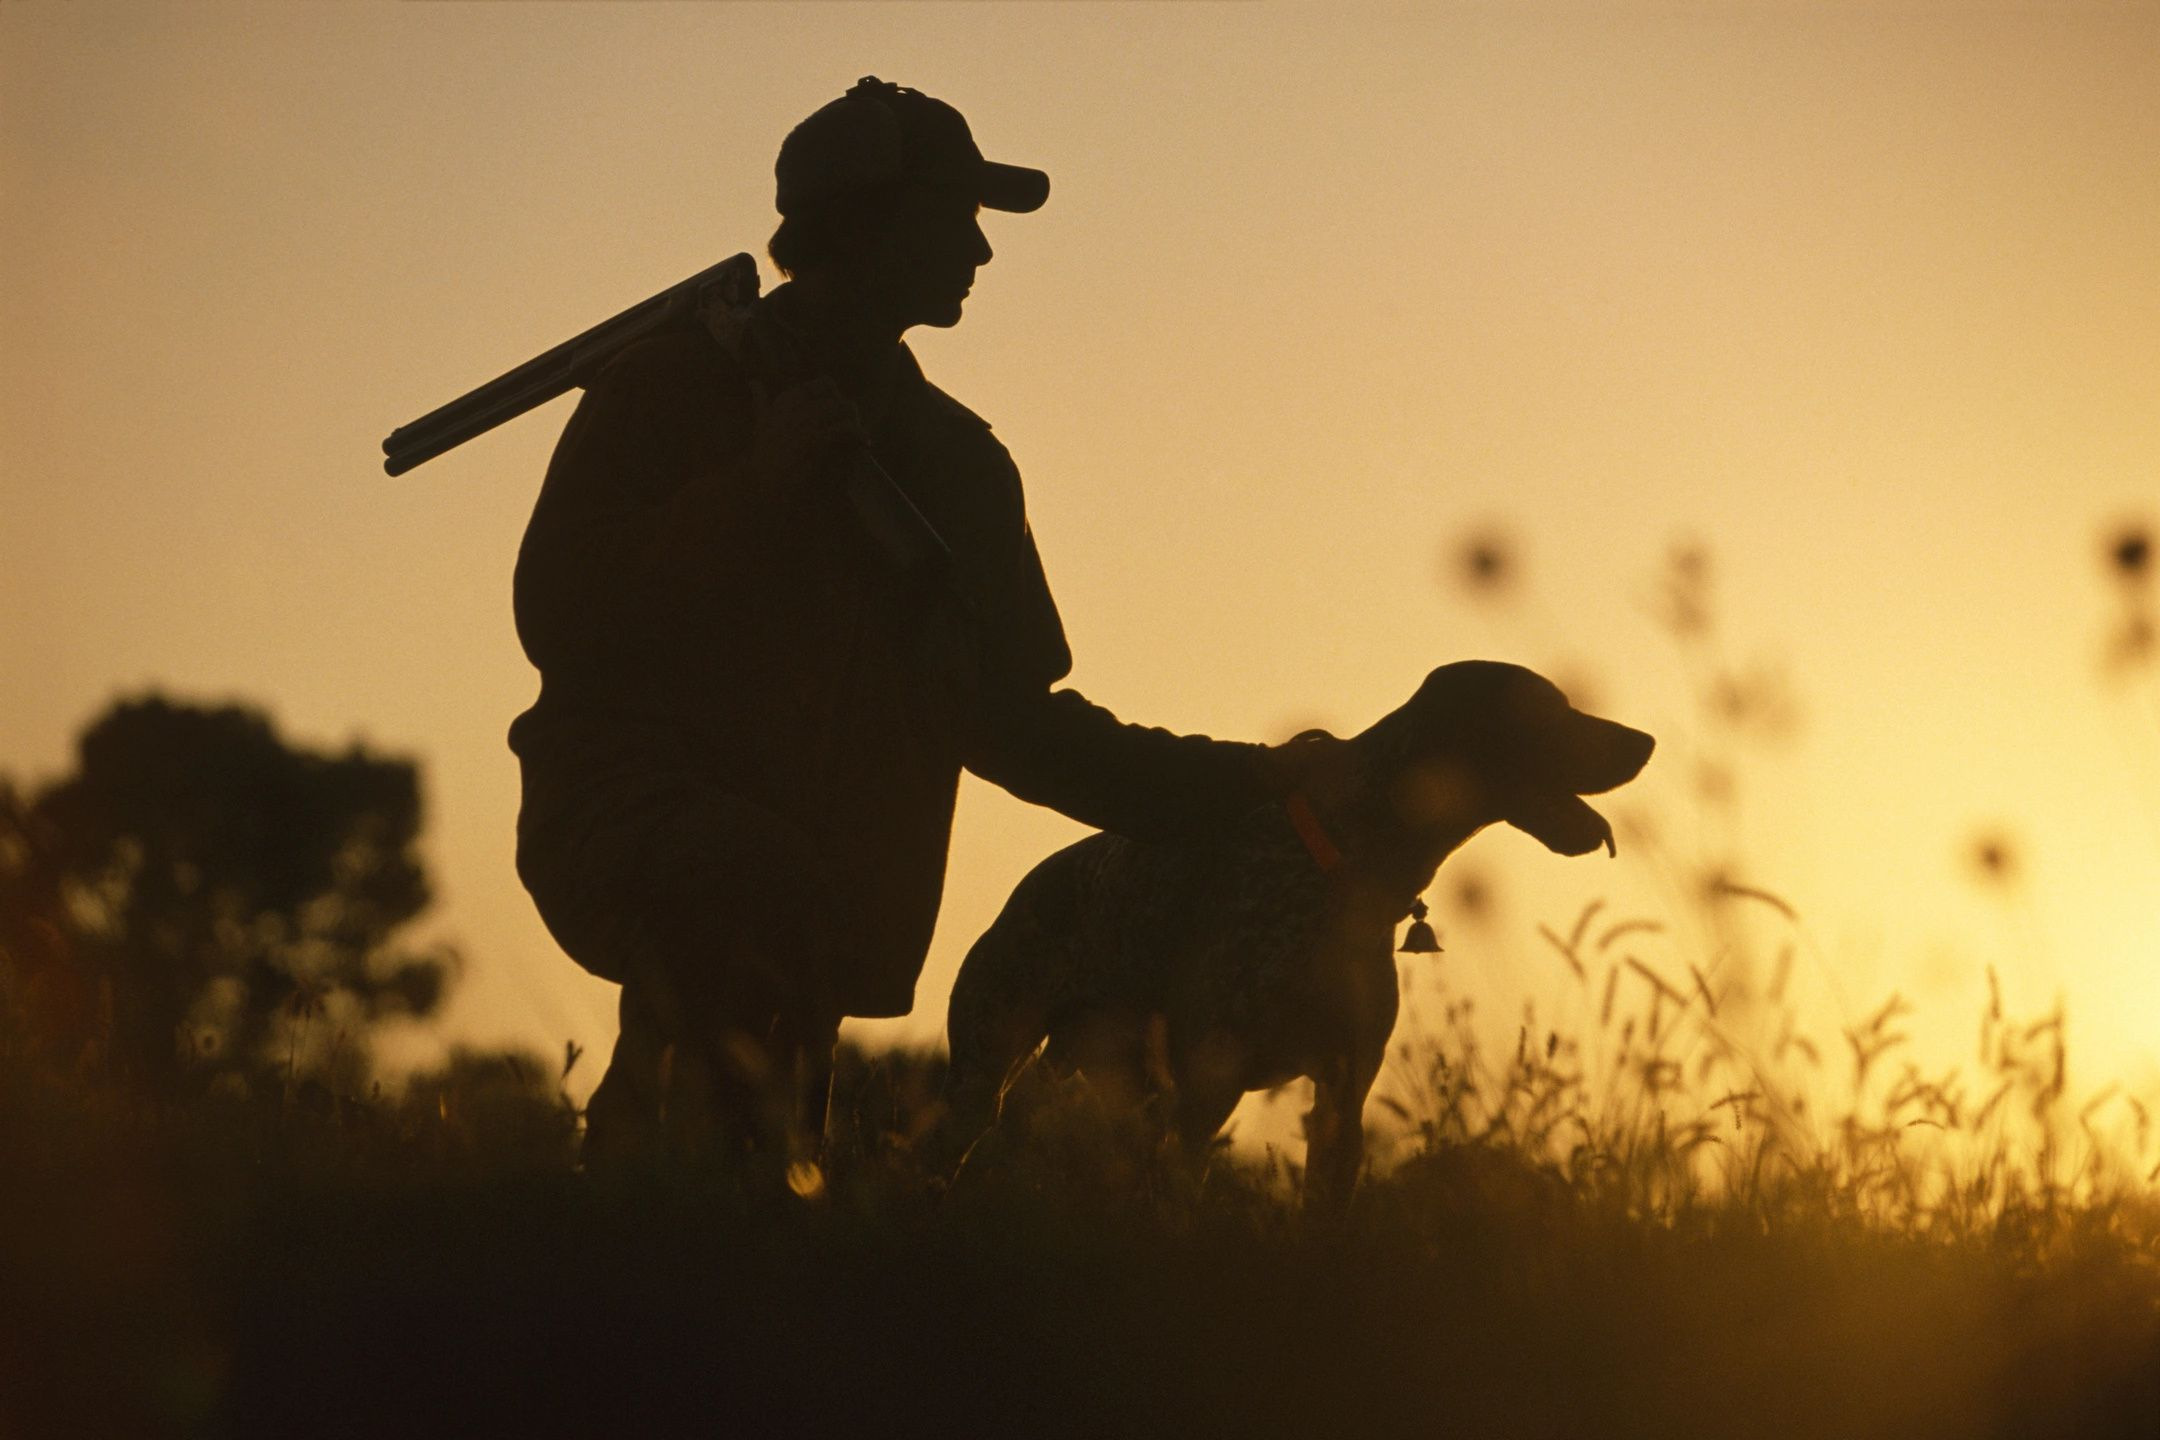 PHEASANT HUNTING TIPS TO CROW ABOUT